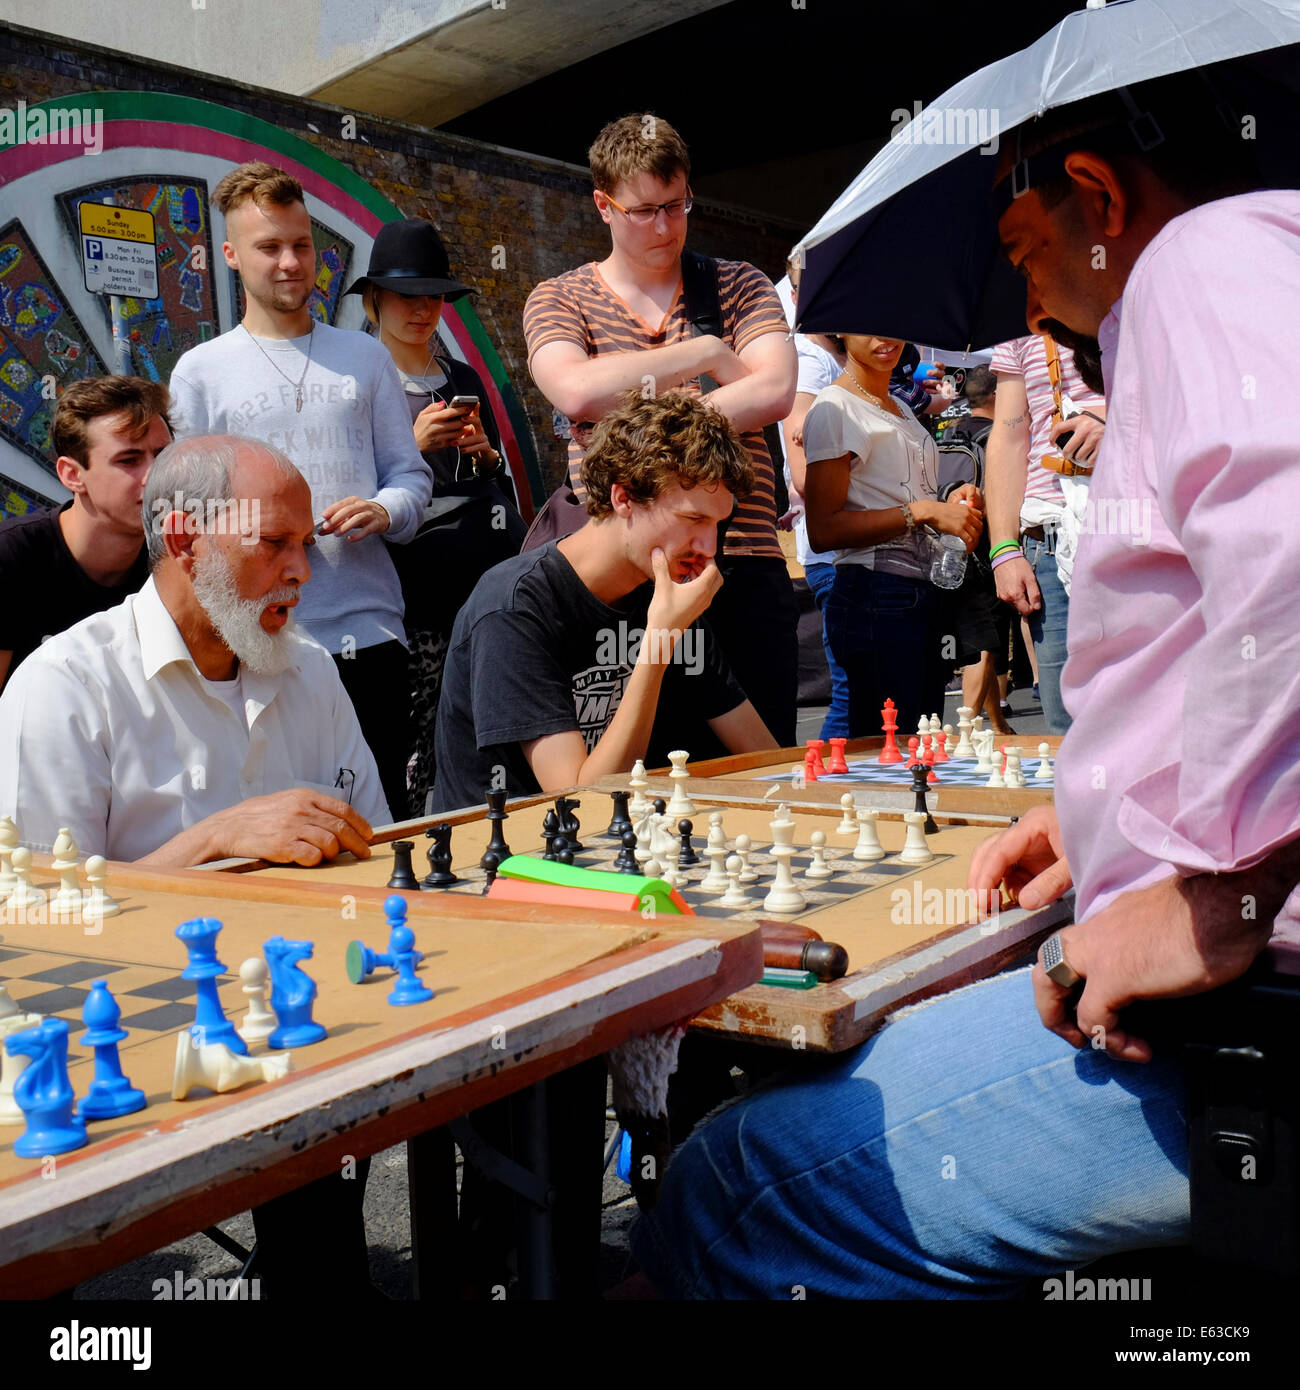 man playing chess against several opponents at the same time in Brick lane, Shoreditch, London, England - Stock Image